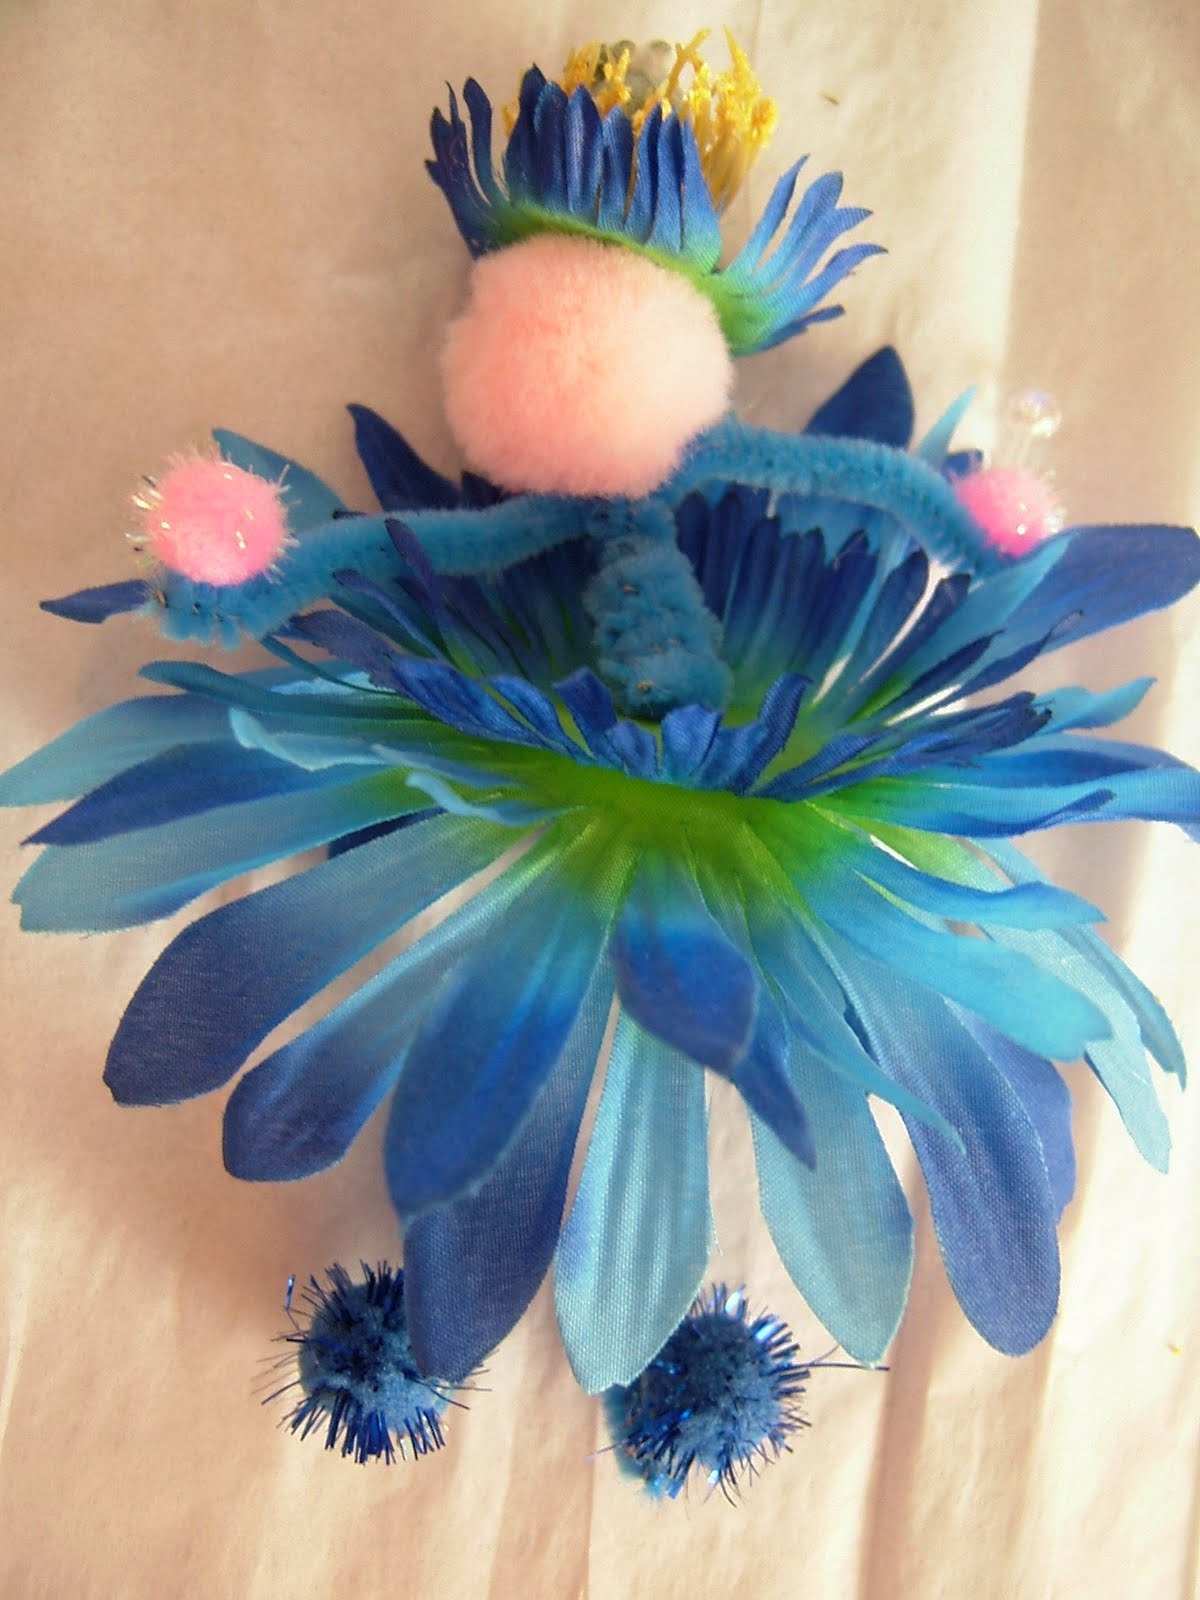 Fairy Crafts Silk Flowers http://lindaomasoldebaggsnstuftshirts.blogspot.com/2010/06/heres-how-to-make-gks-flower-fairy.html